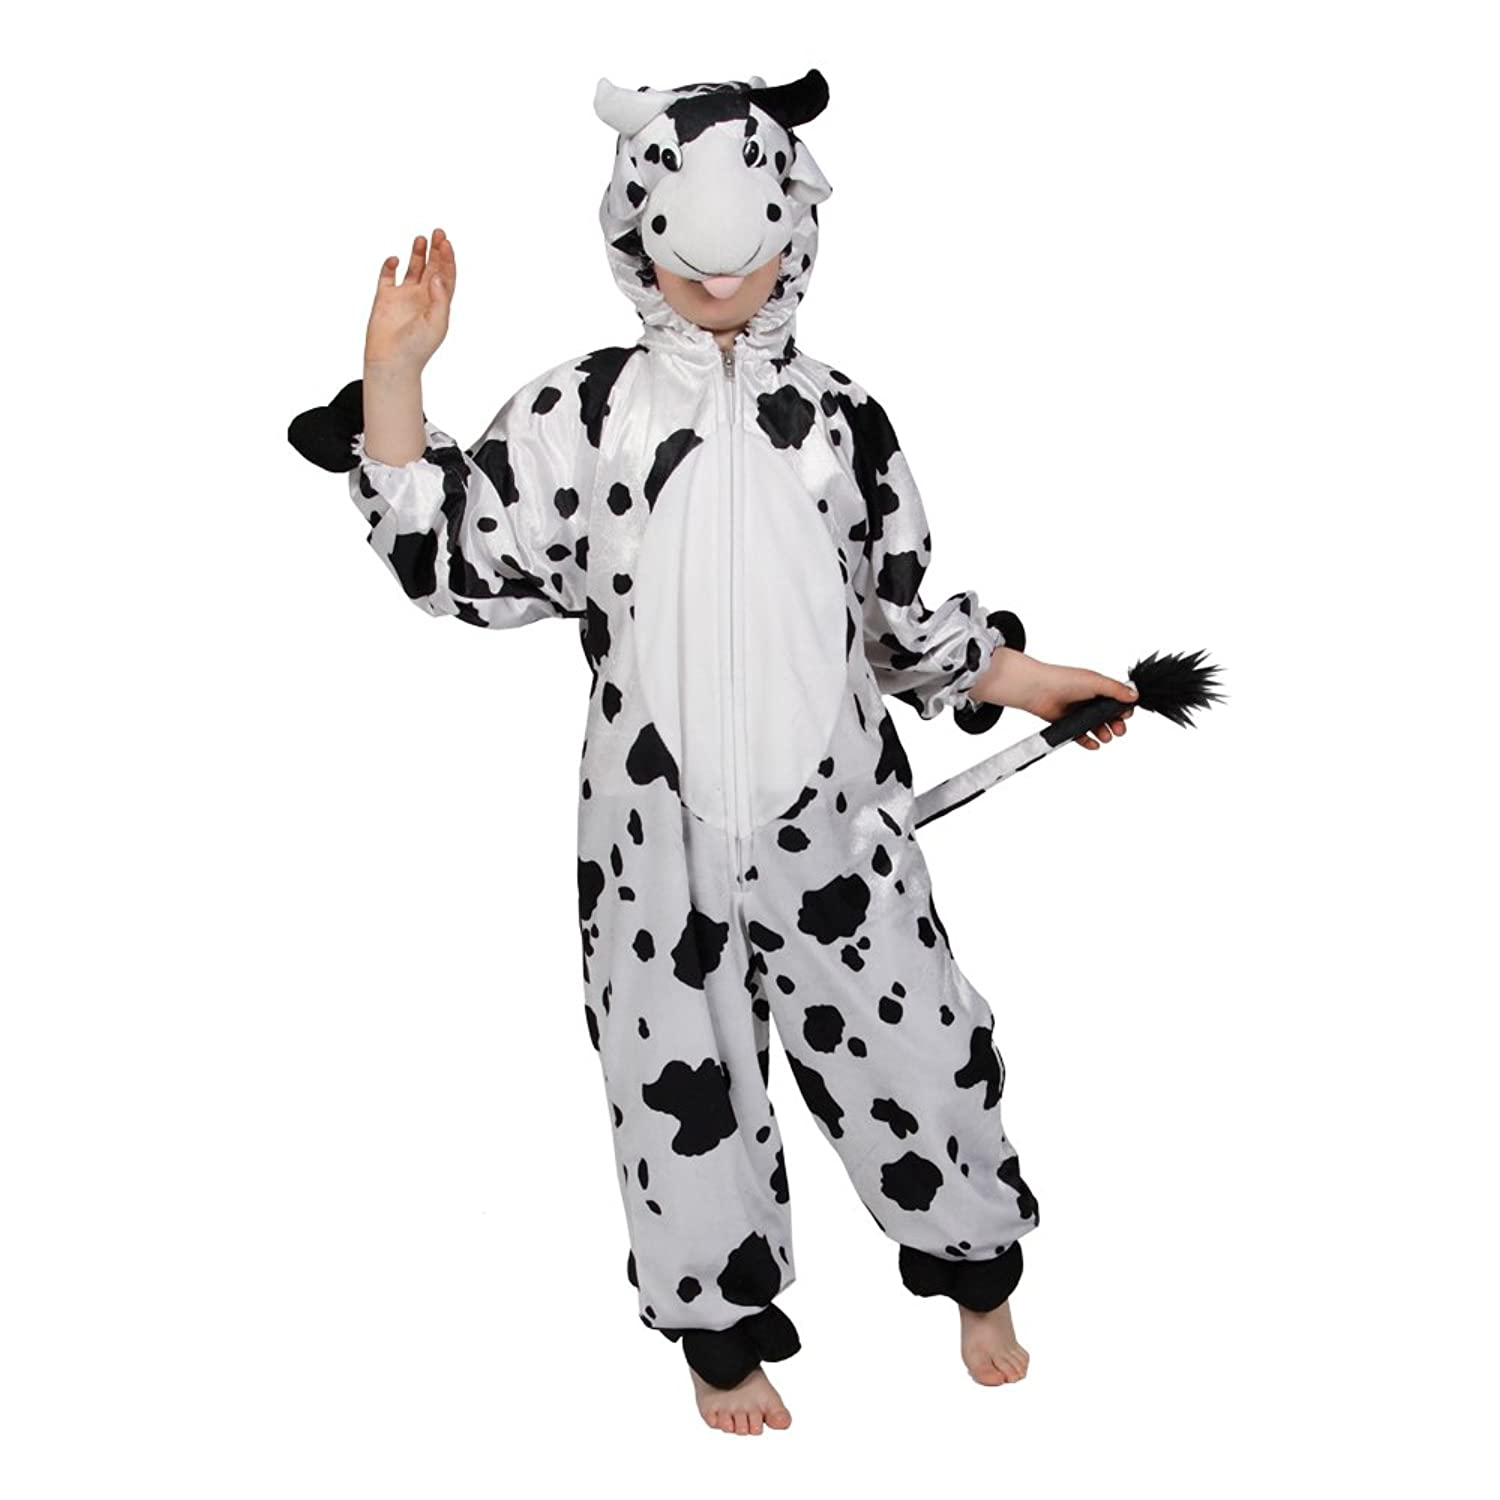 childrens fancy dress up halloween costume cow amazoncouk toys games - Halloween Costume Cow